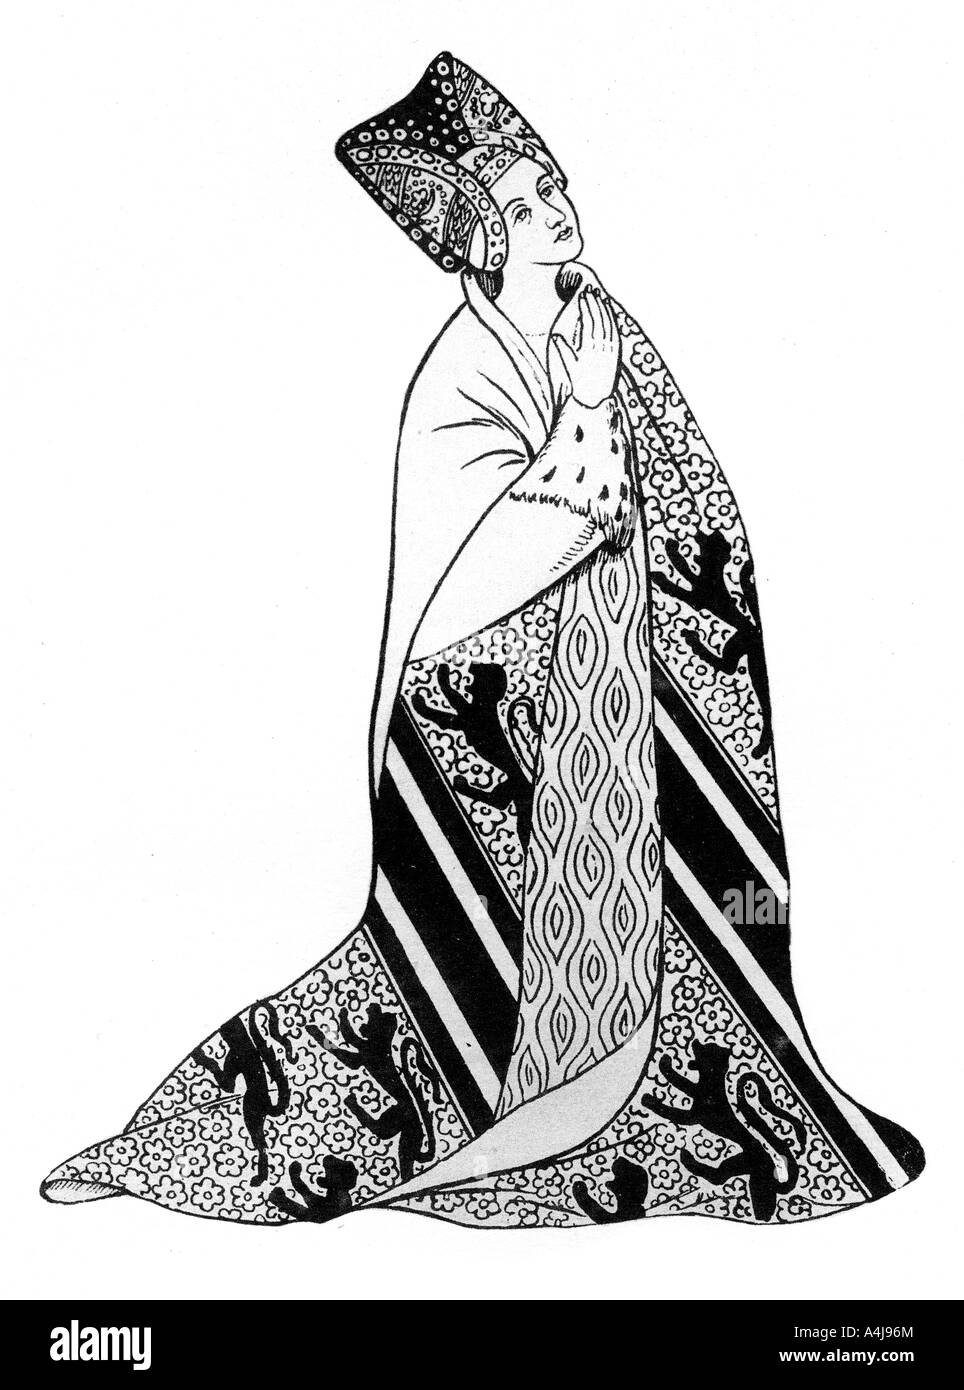 Lady Arderne wife of Sir Peter Arderne Judge and Chief Baron of the Exchequer 1924  - Stock Image